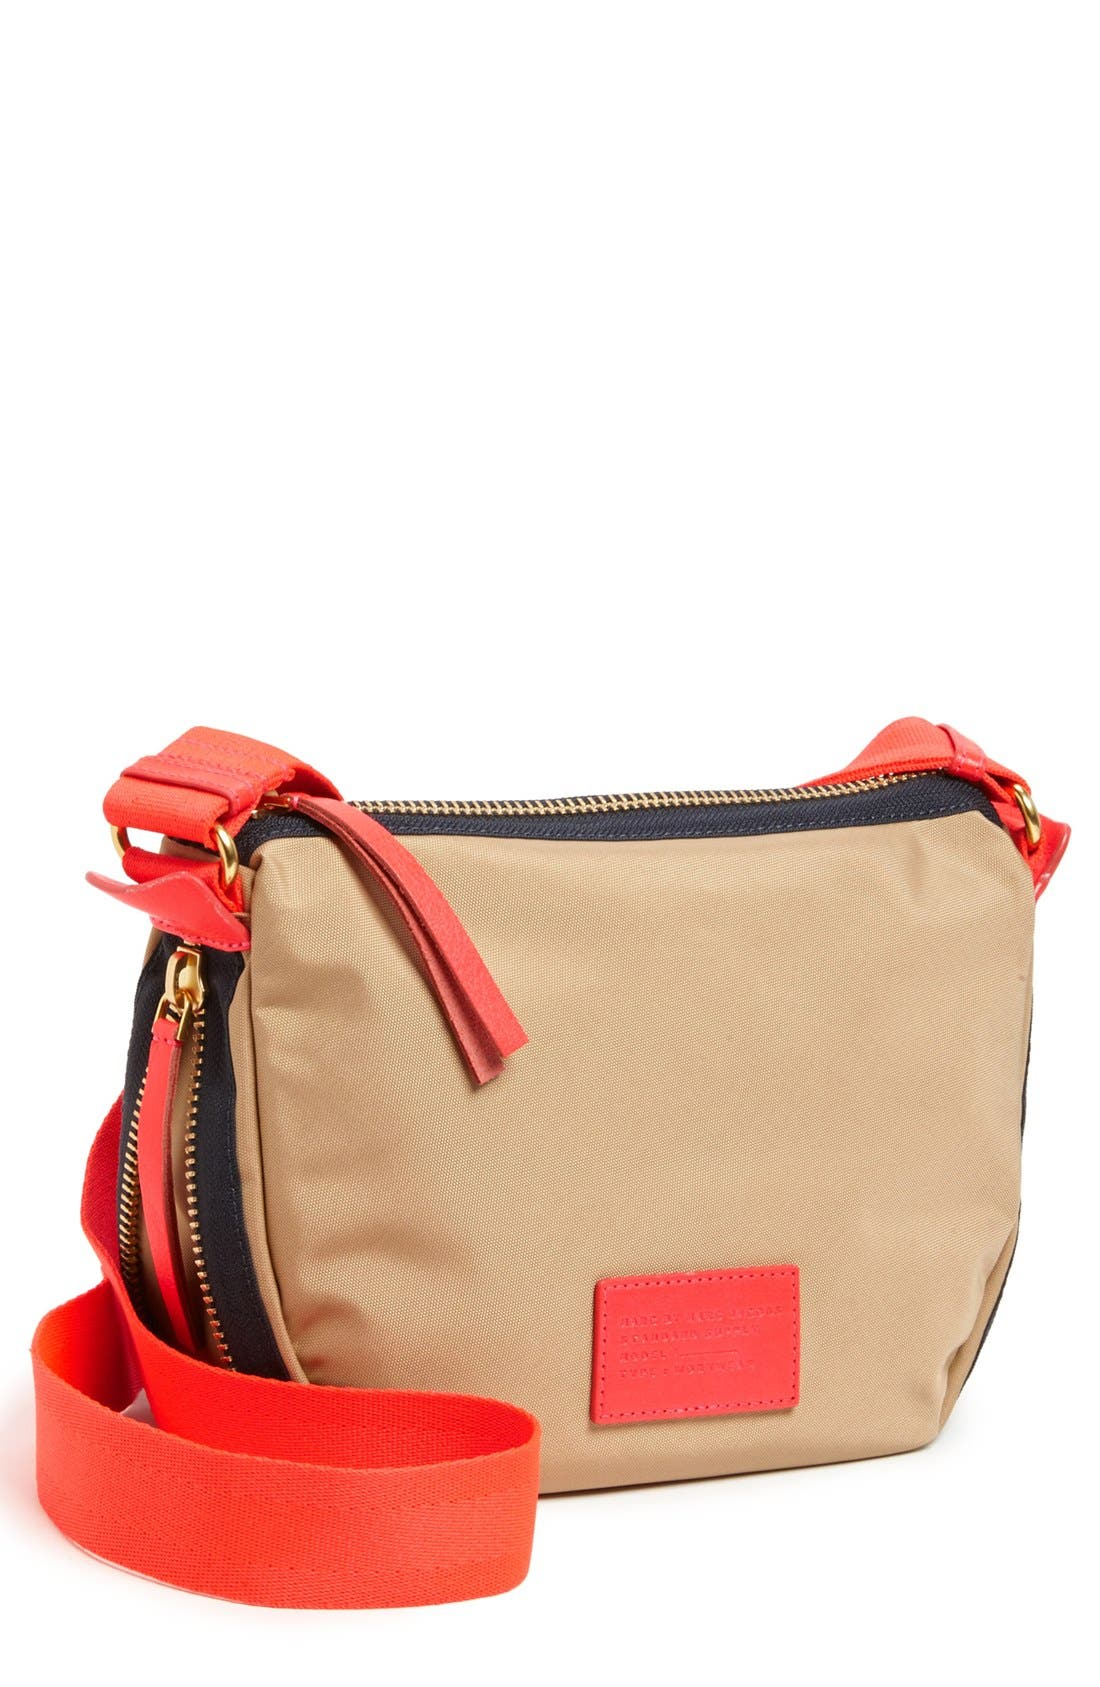 Alternate Image 1 Selected - MARC BY MARC JACOBS 'Domo Arigato XBuddy' Crossbody Bag